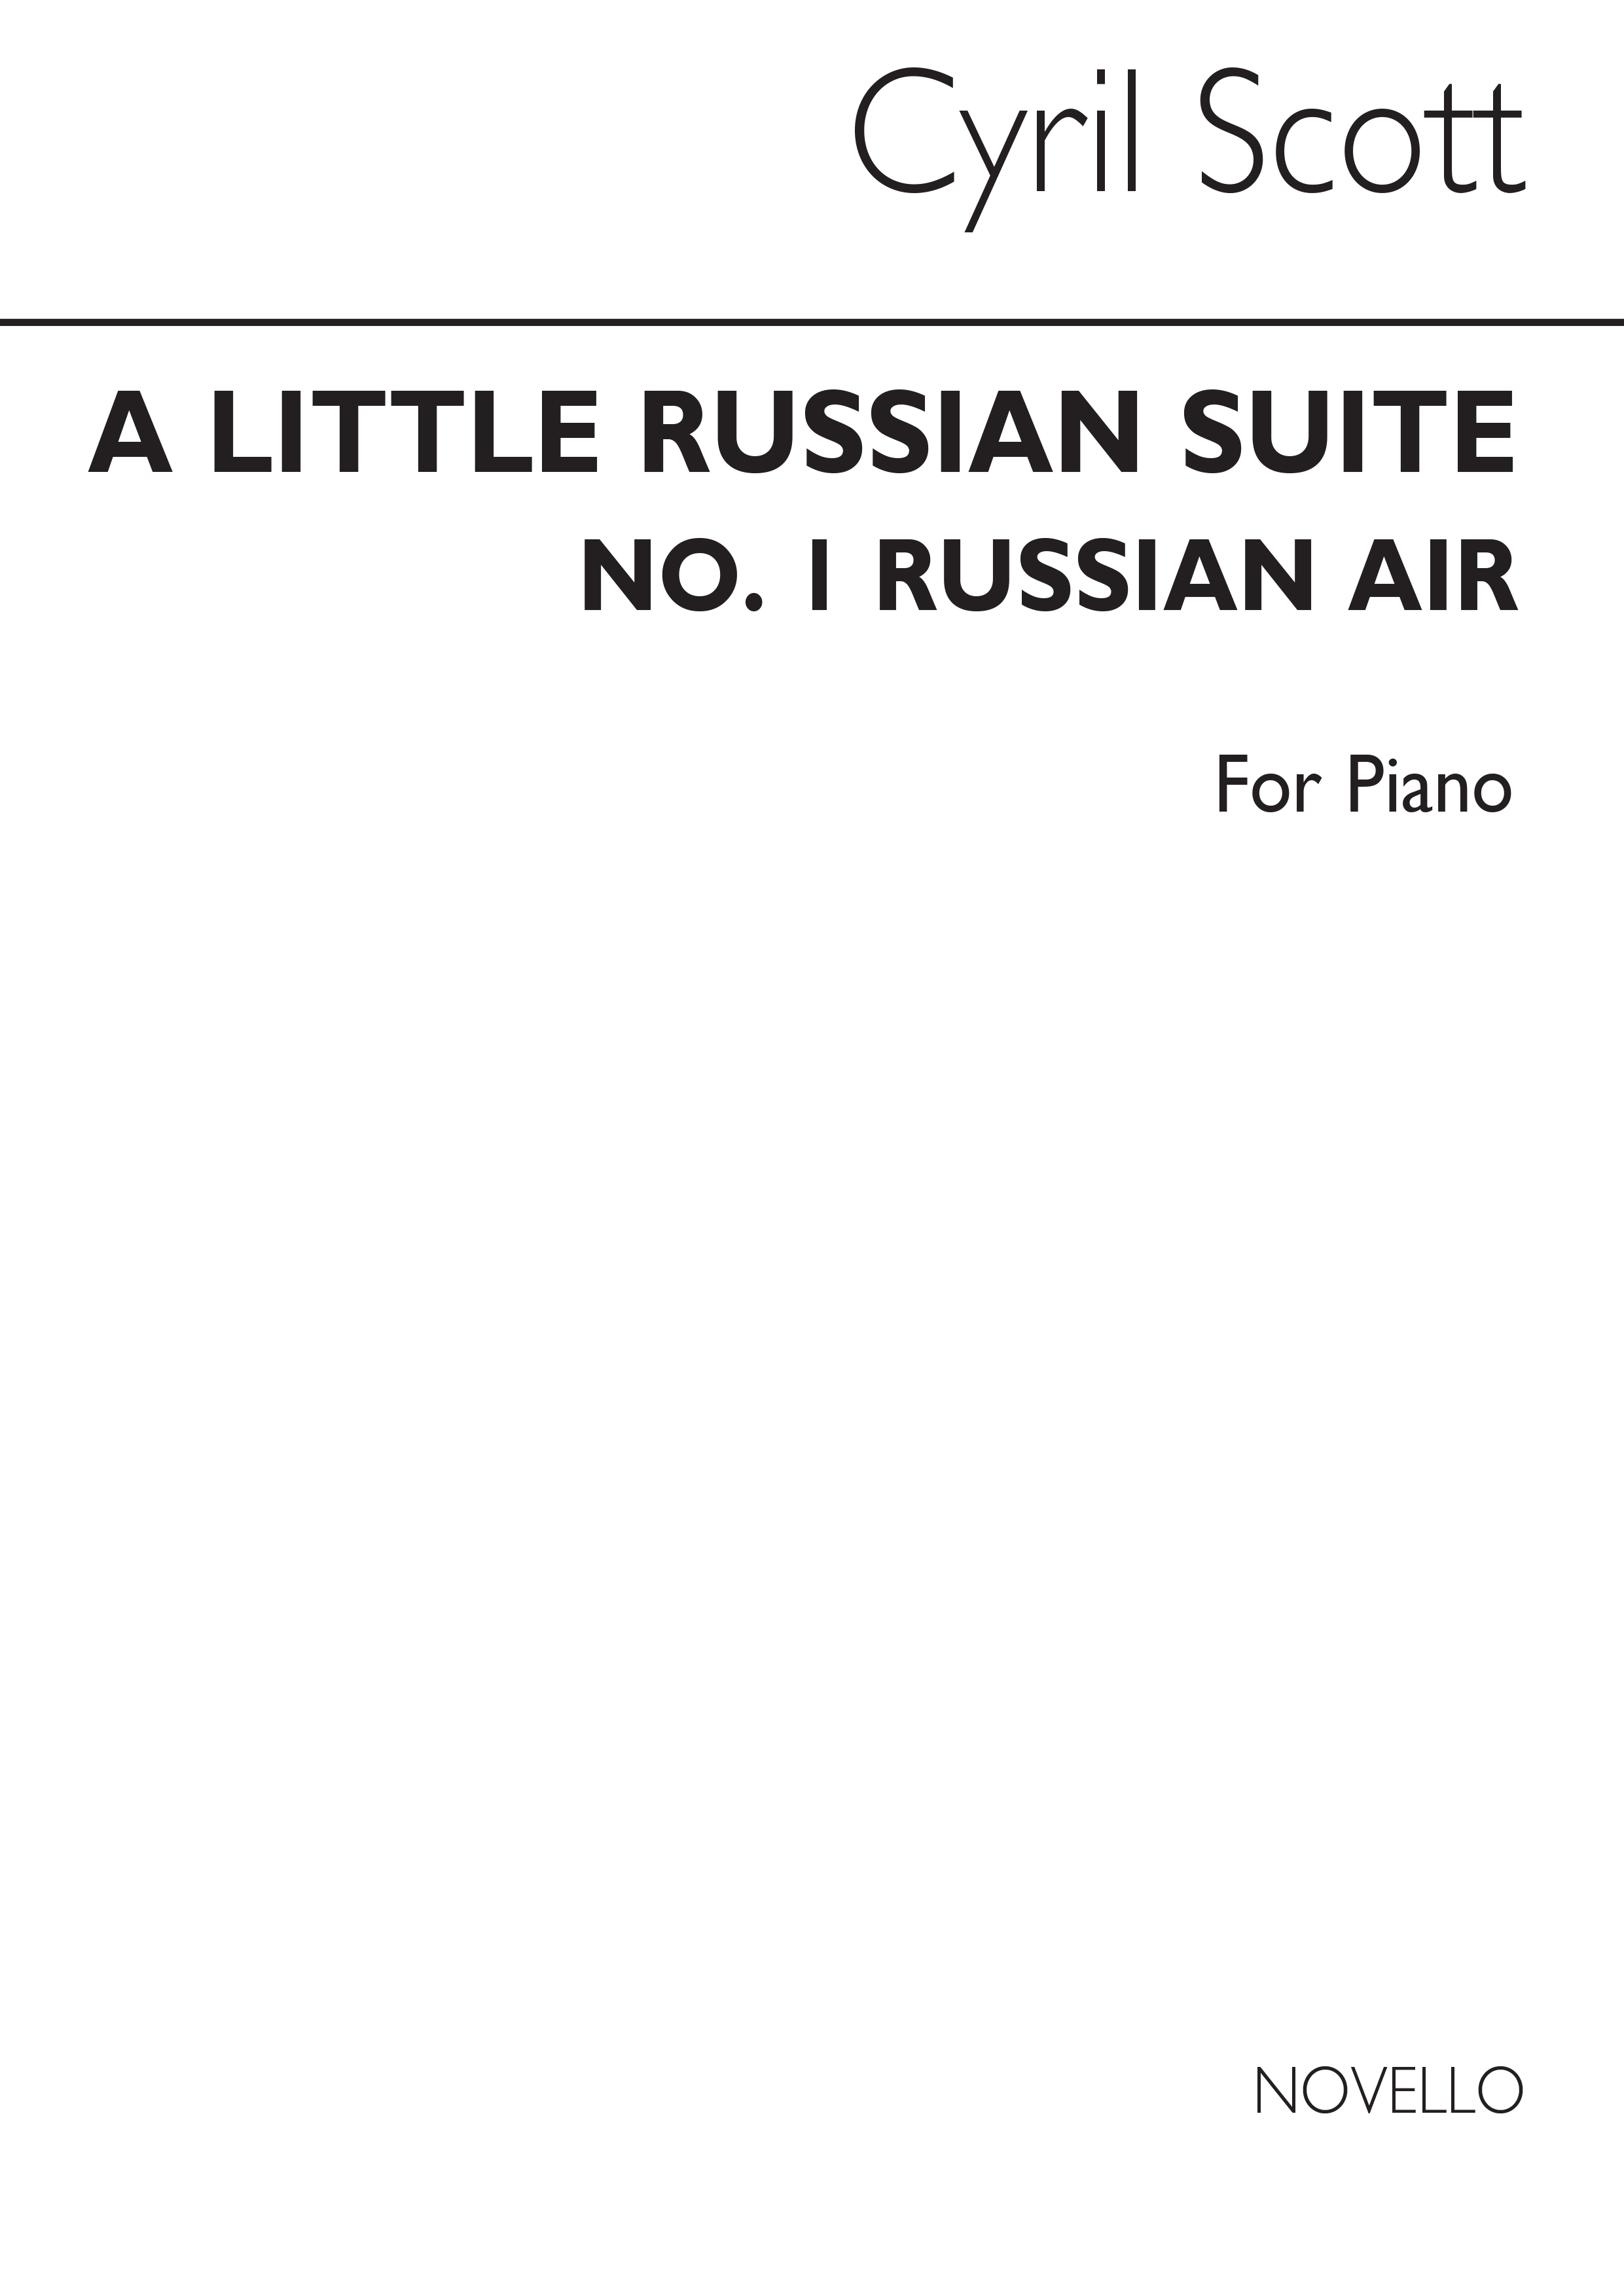 Cyril Scott: A Little Russian Suite (Movement No.1-russian Air): Piano: